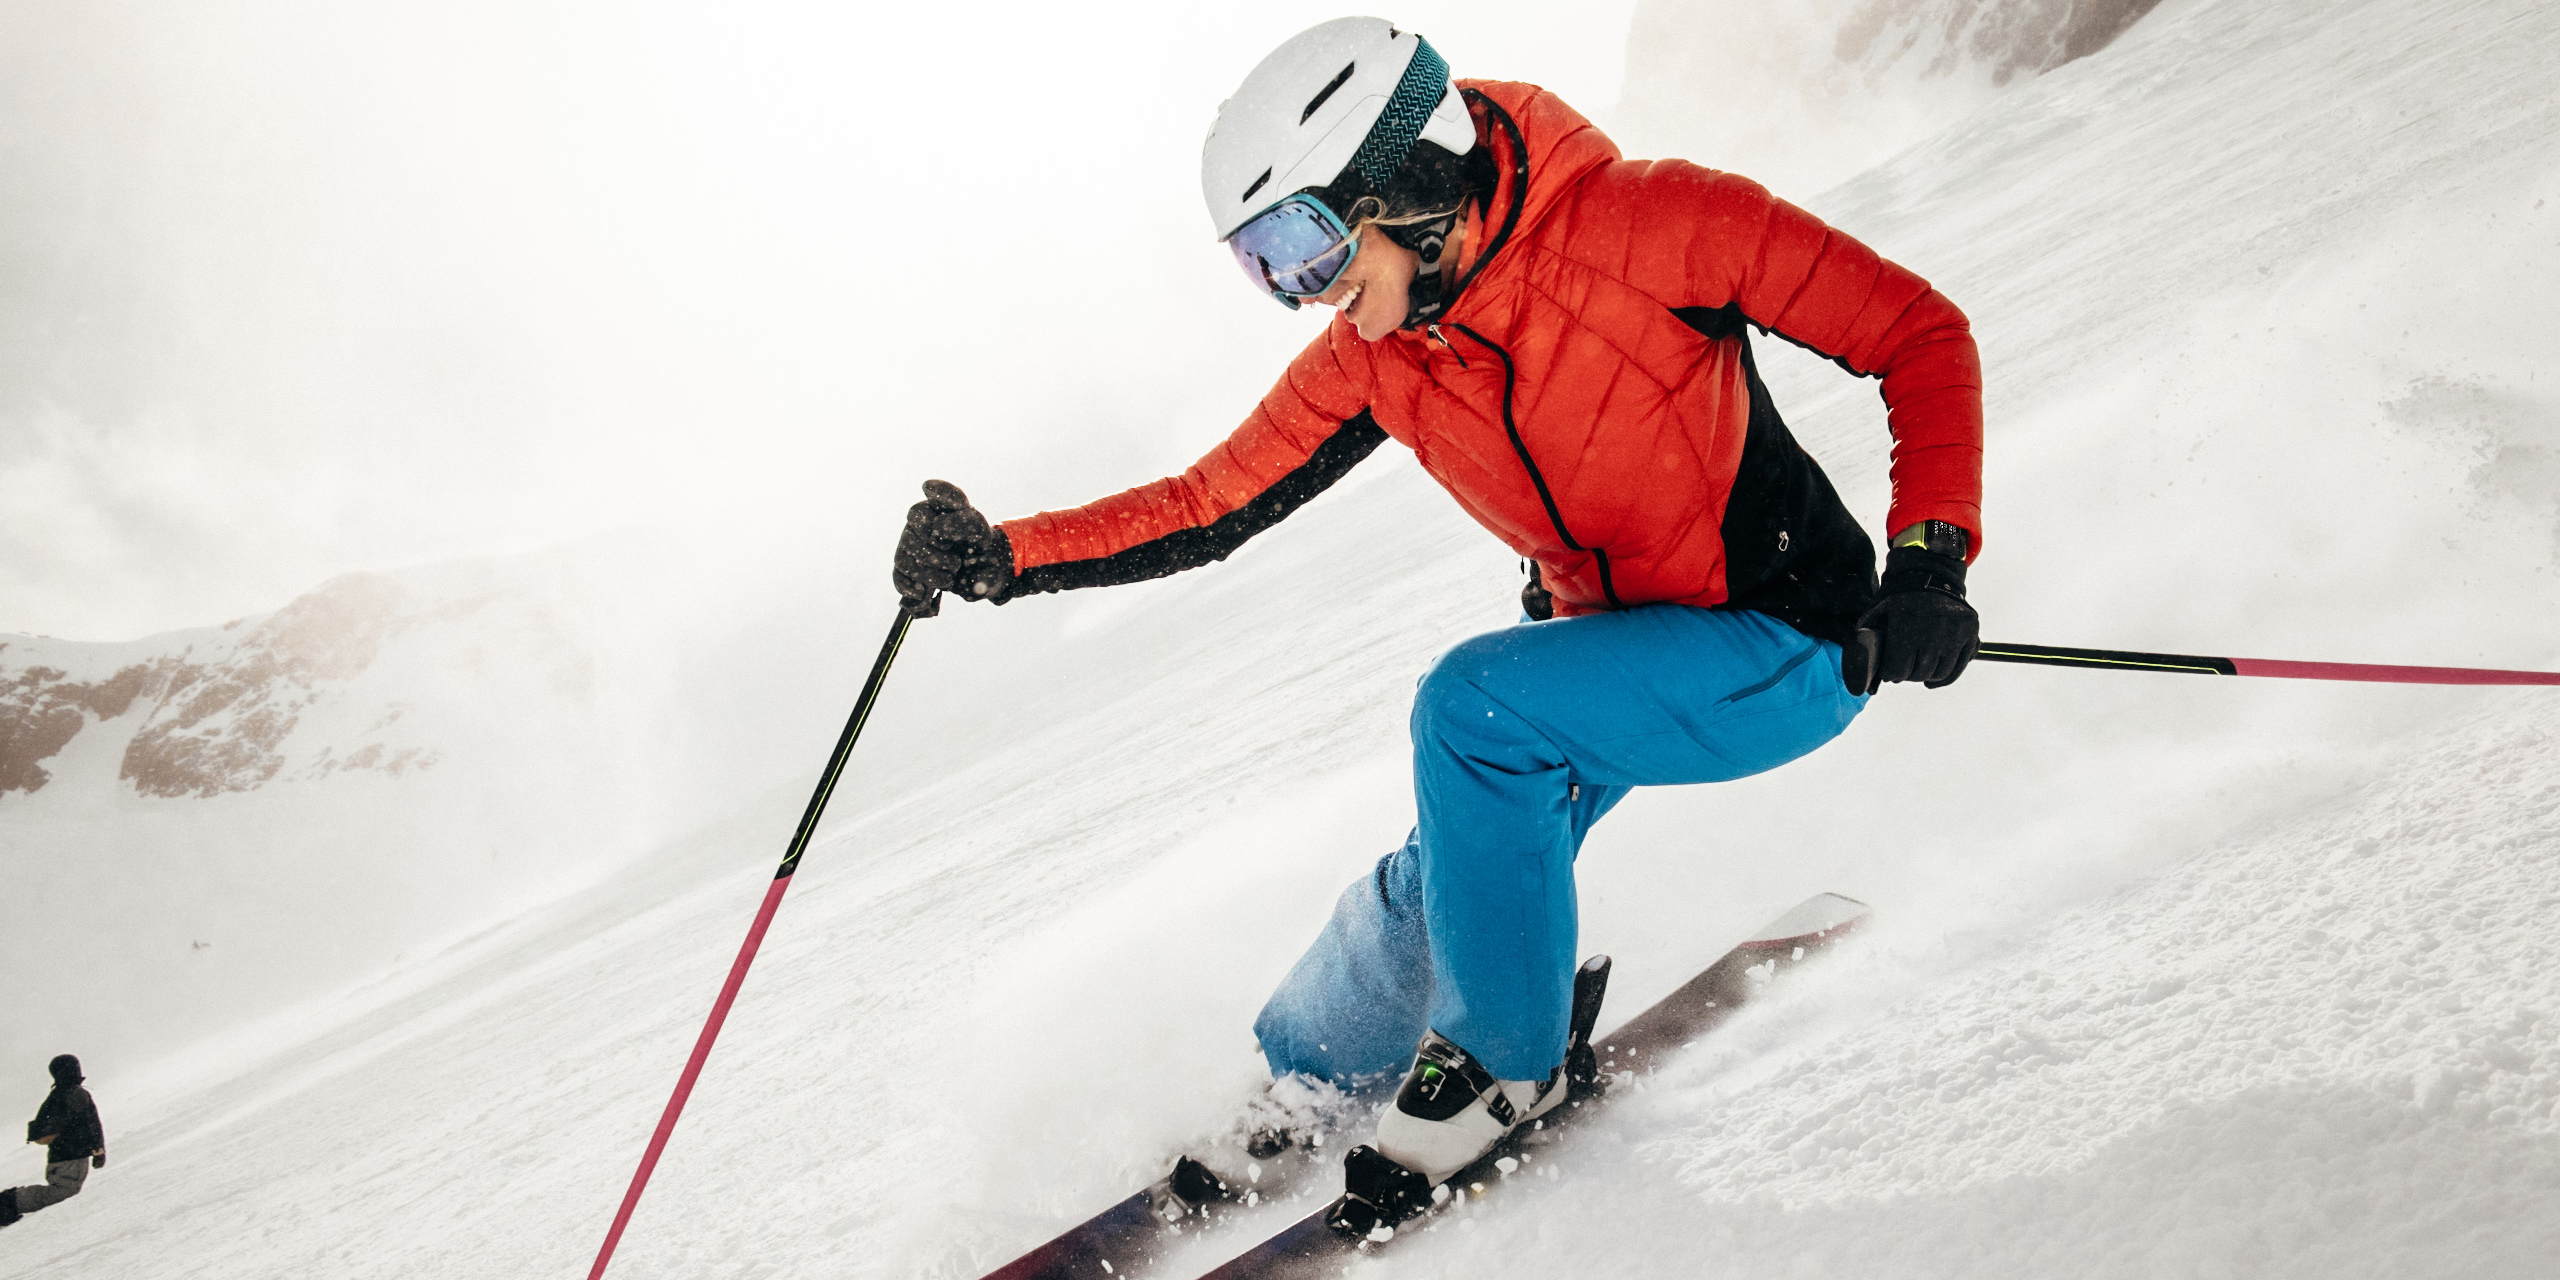 Apple Watch Can Now Track Detailed Ski And Snowboard Activity